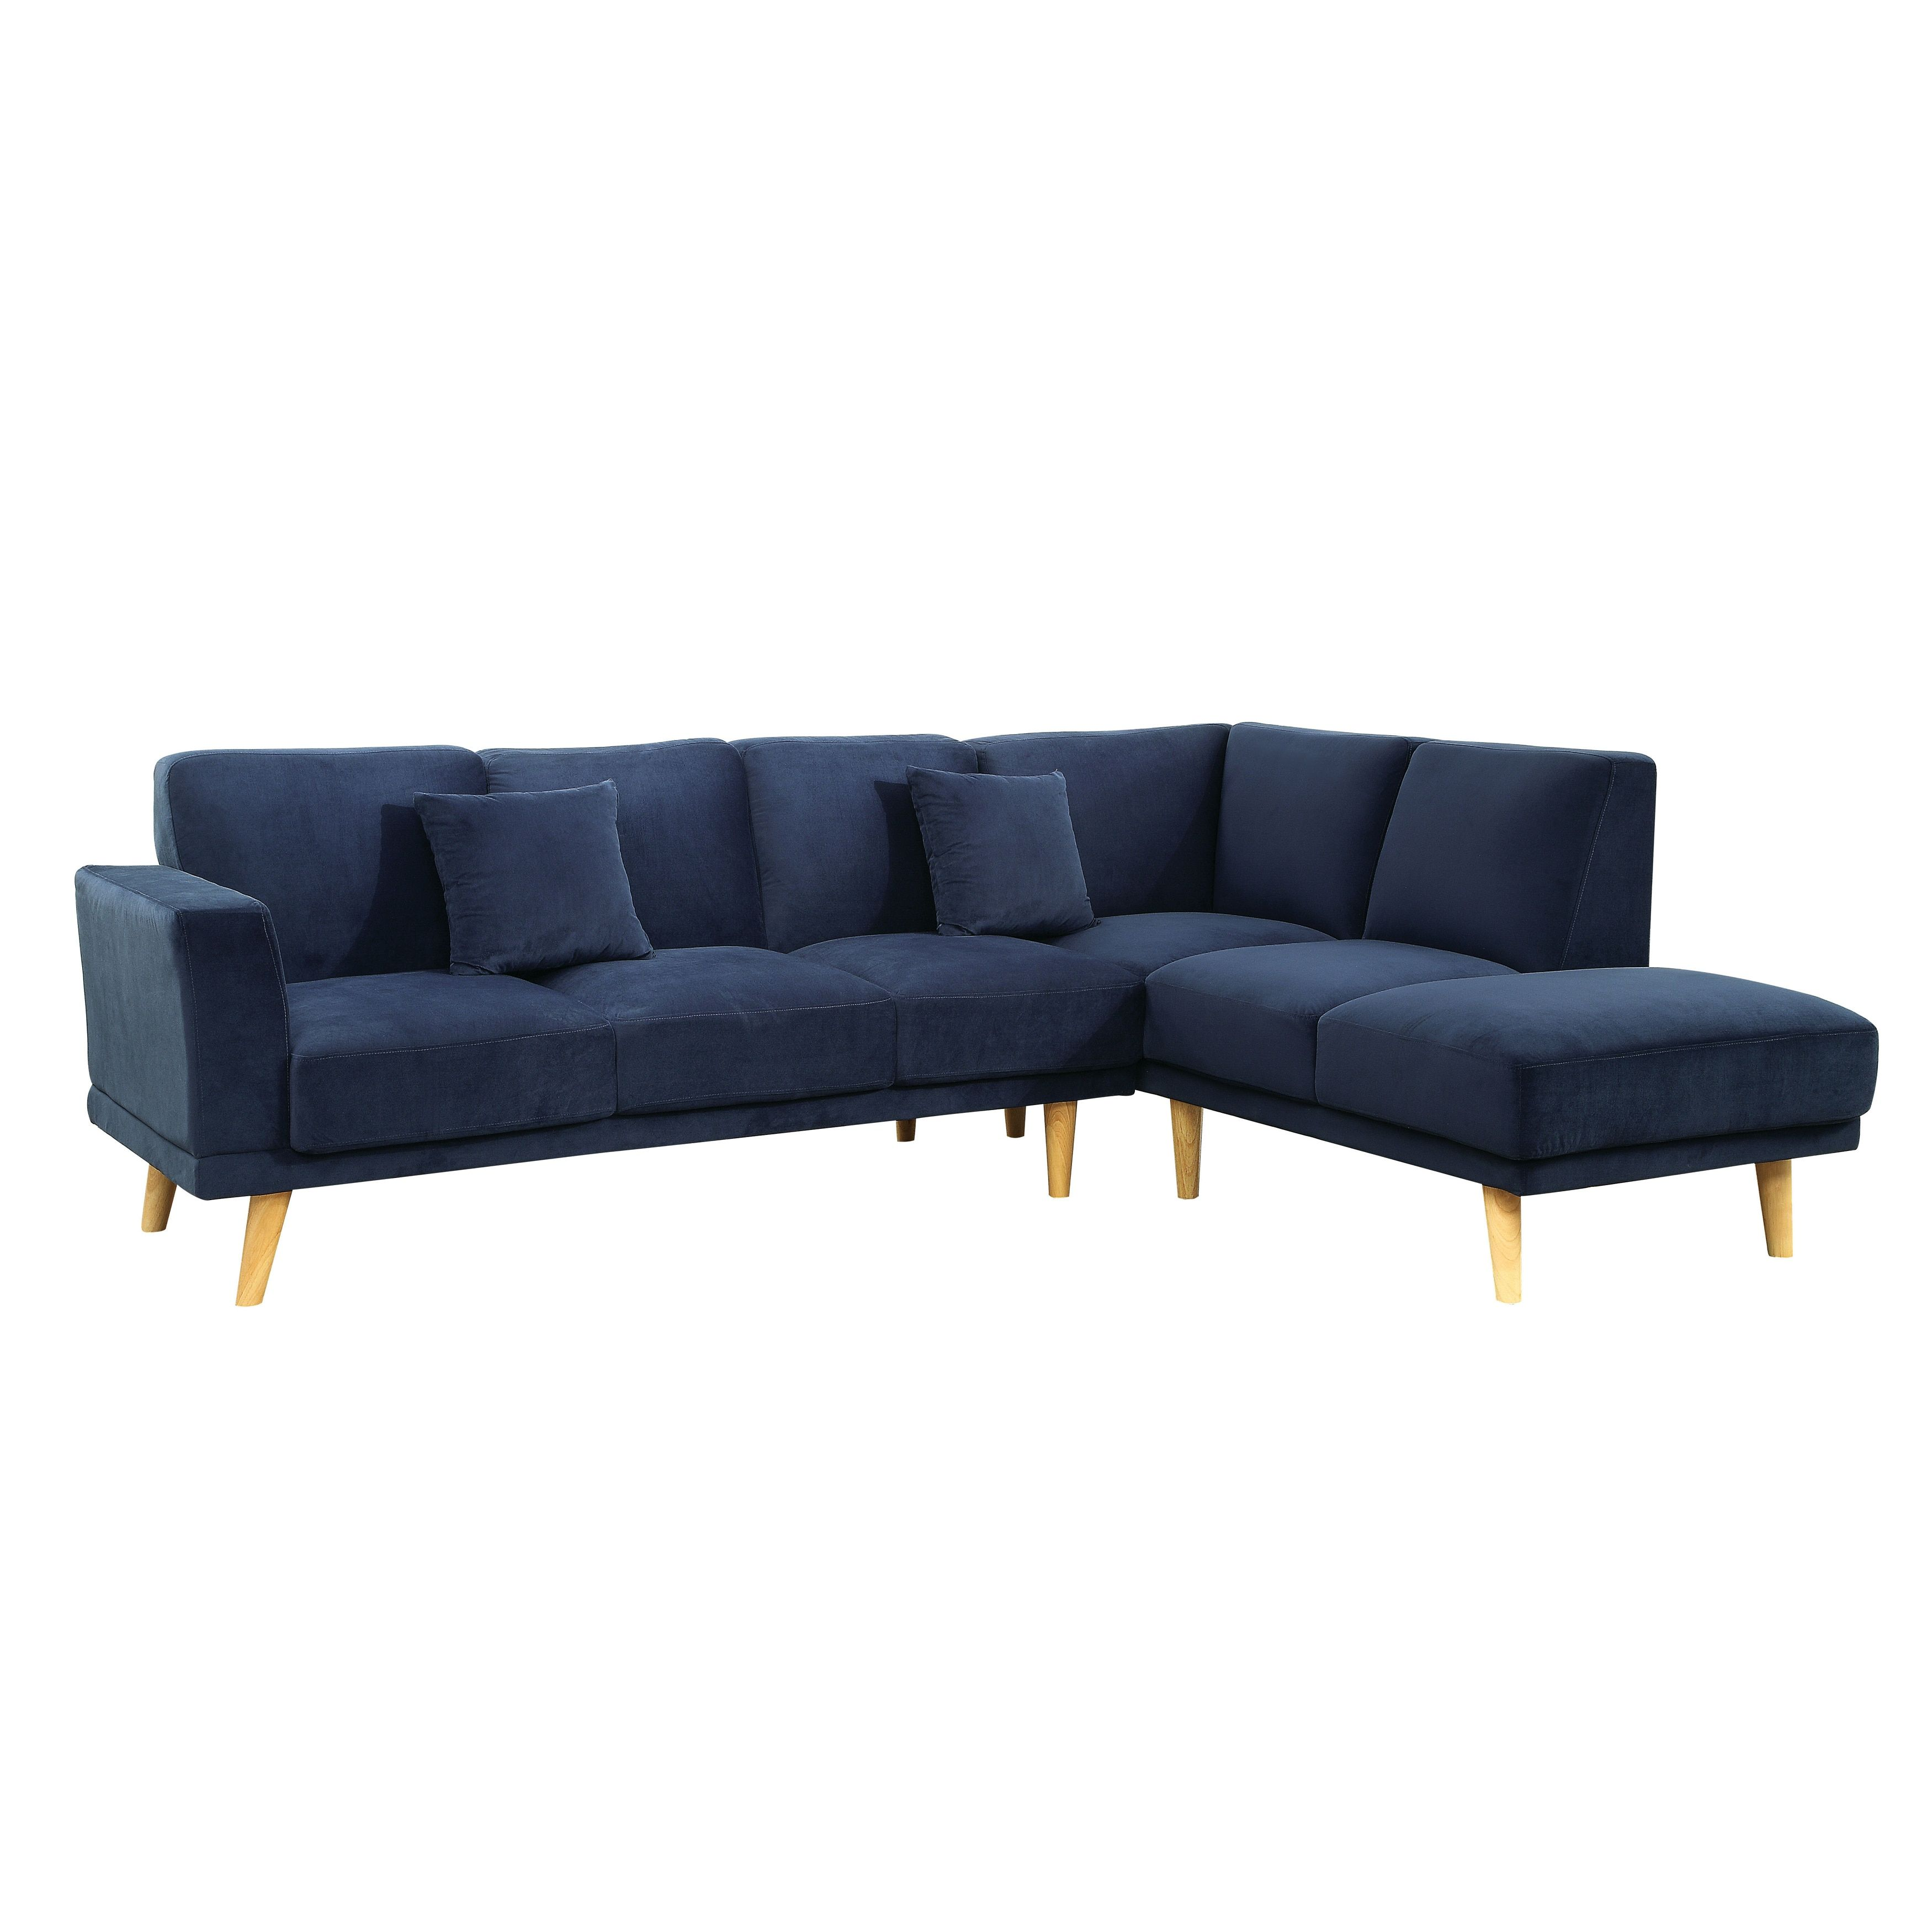 Furniture Of America Rama Mid Century Modern Flannelette L Shaped Sectional Mid Century Modern Sectional Sofa Modern Sofa Sectional Mid Century Modern Sofa Bed